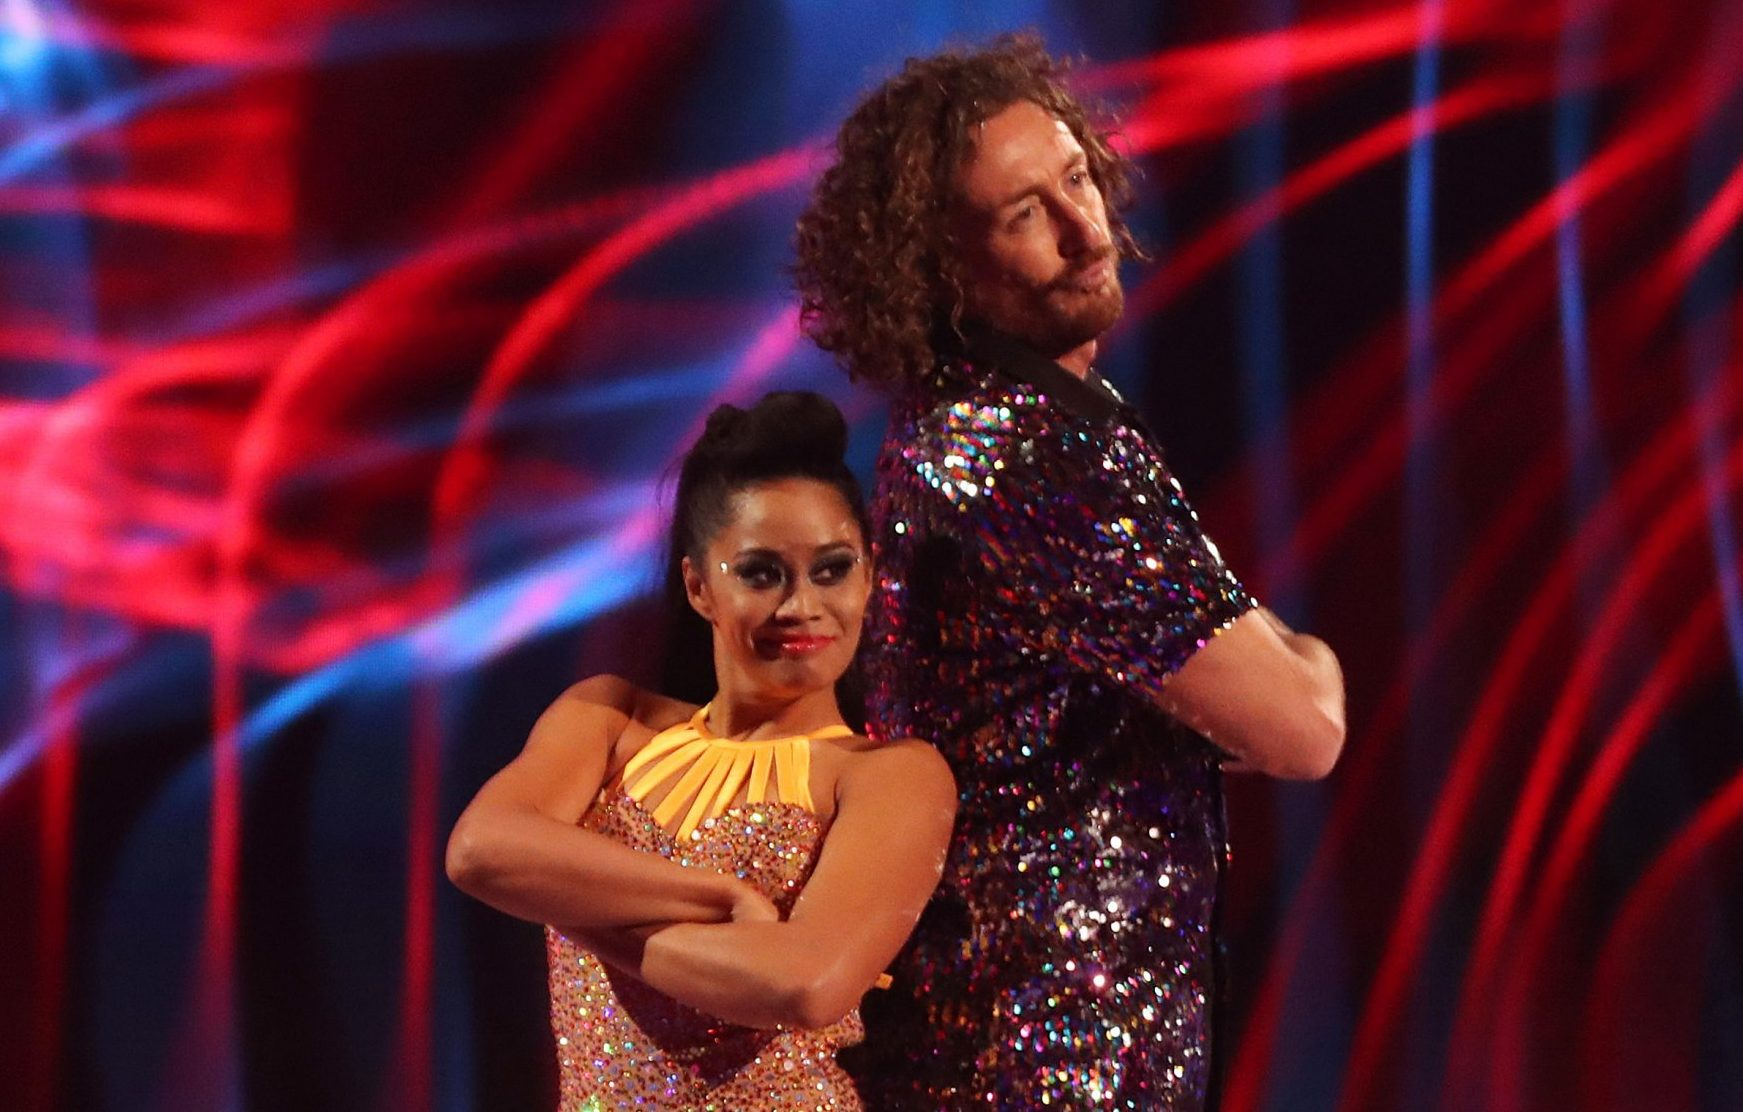 Dancing On Ice's Ryan Sidebottom to miss next live show after suffering injury